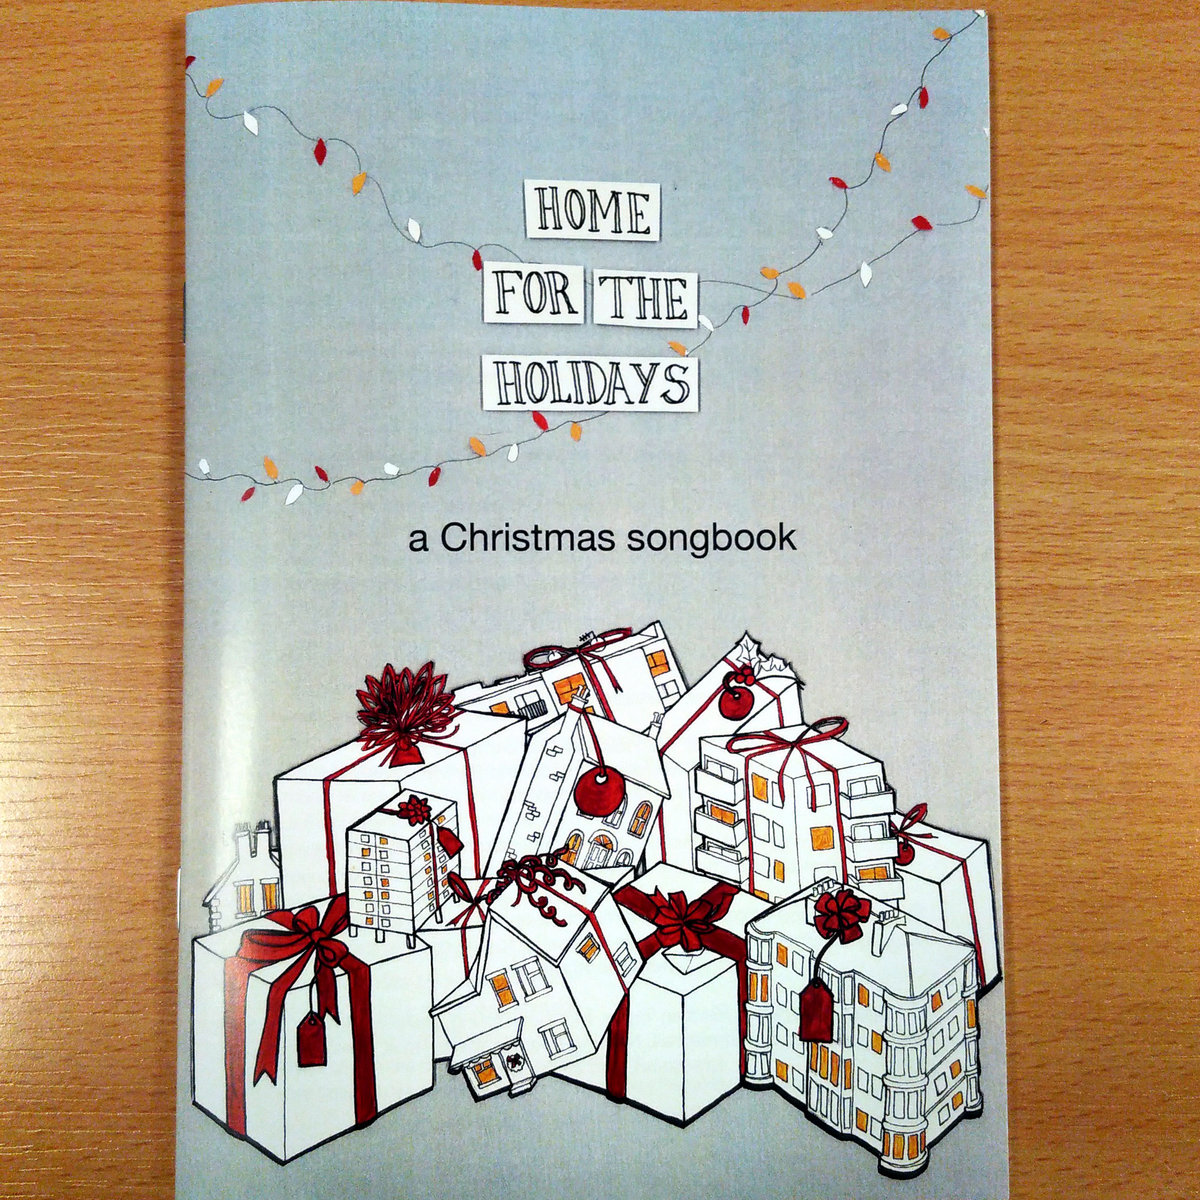 Home For The Holidays: A Christmas Songbook | Shelter Scotland